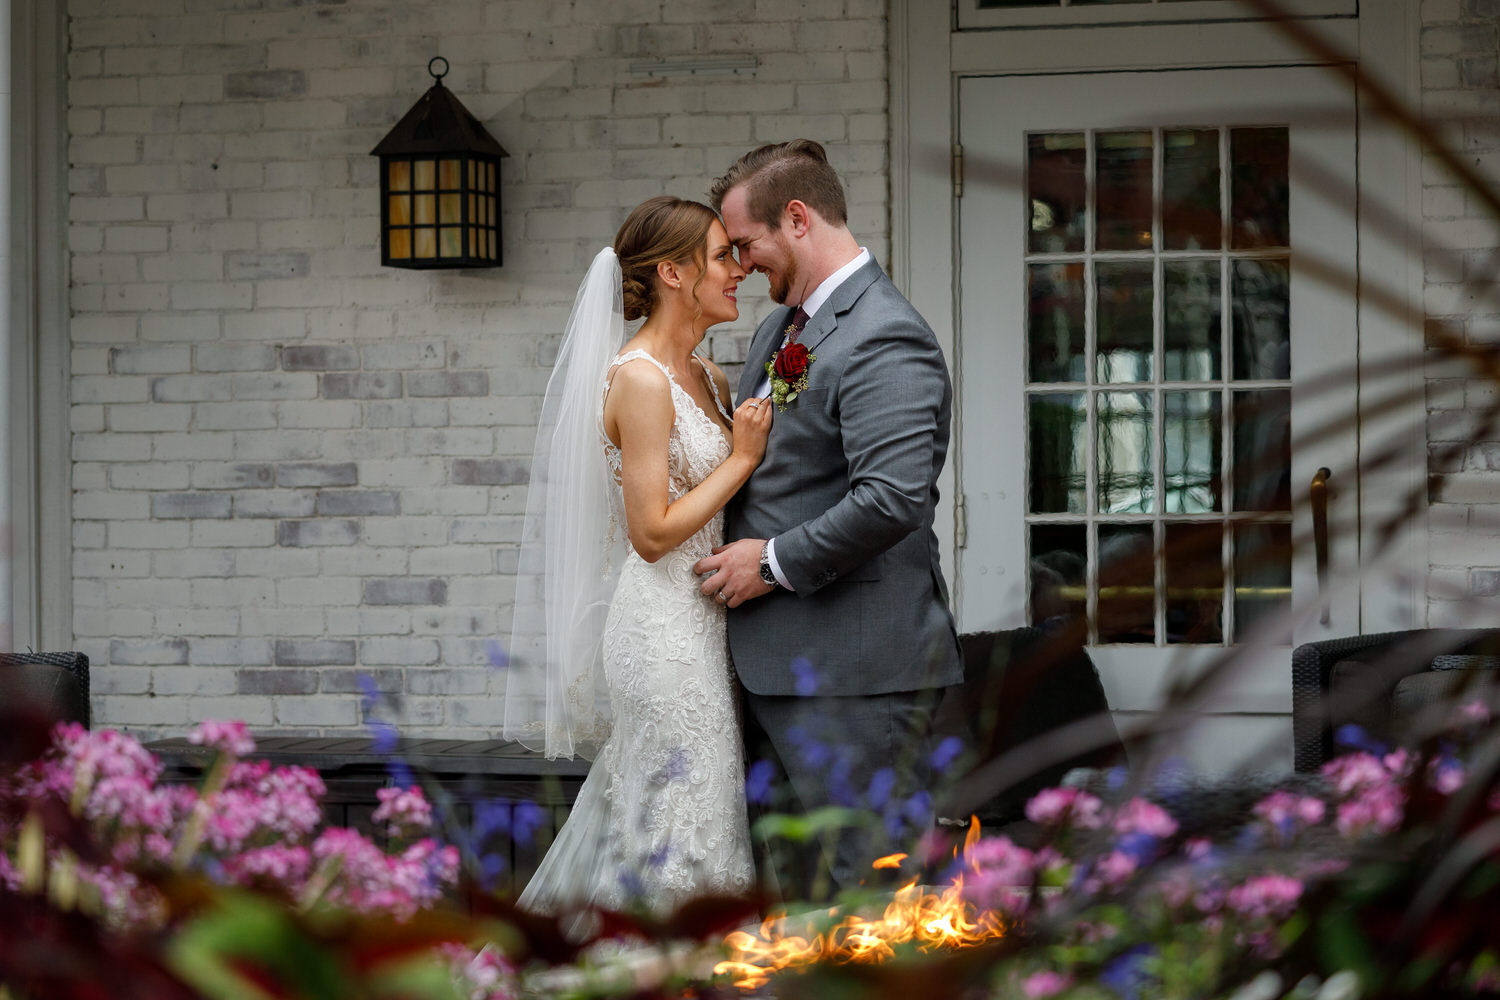 Bride and Groom embracing in front of the fire and flowers in front of the Inn on Boltwood